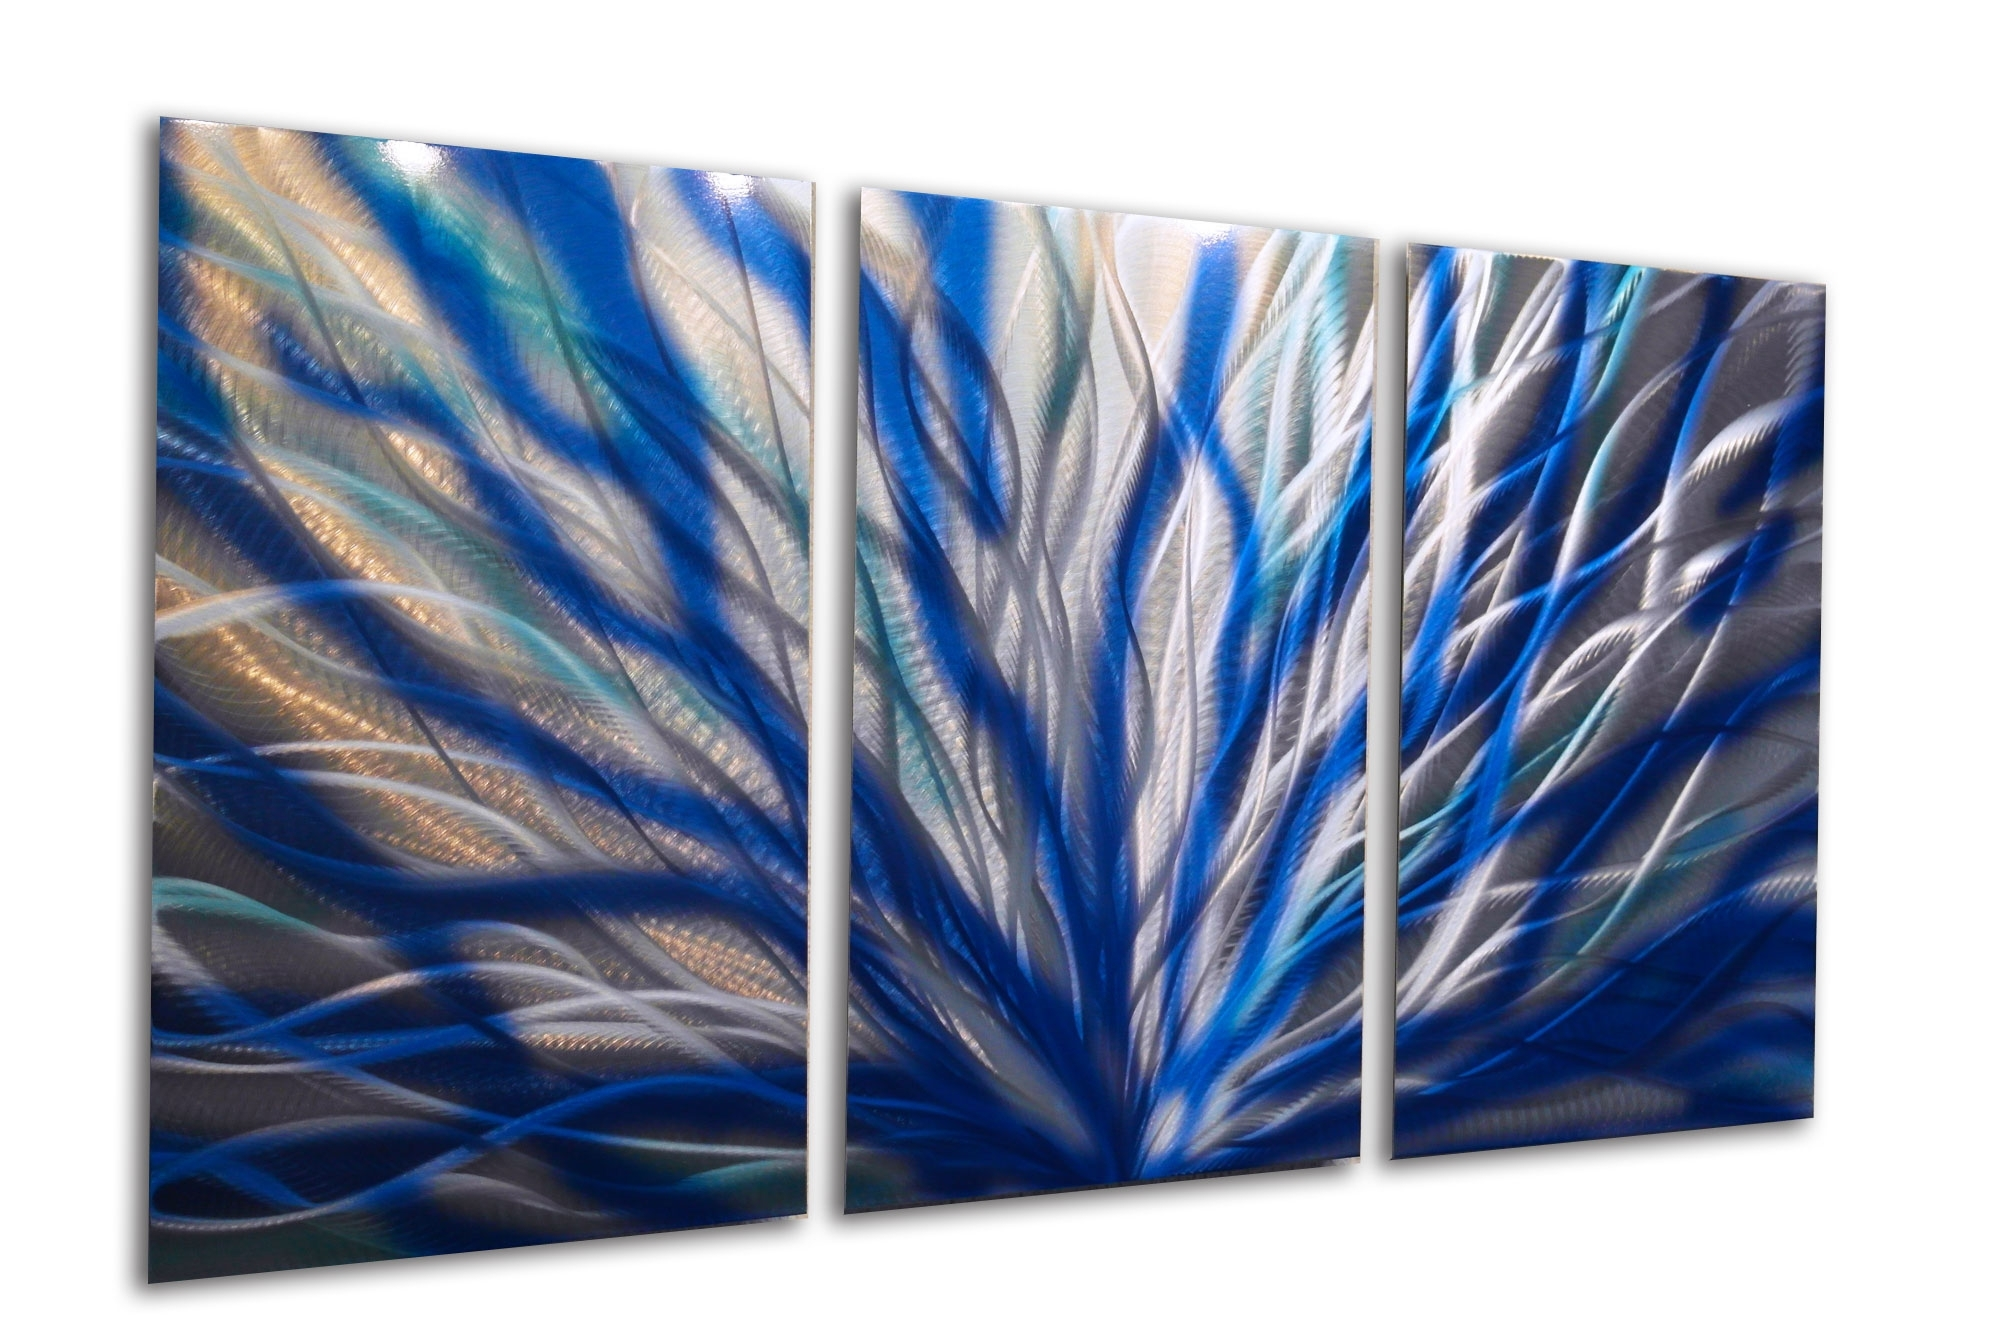 Radiance Blue 47 V2 – Metal Wall Art Abstract Sculpture Modern Regarding Best And Newest Abstract Leaves Wall Art (Gallery 19 of 20)